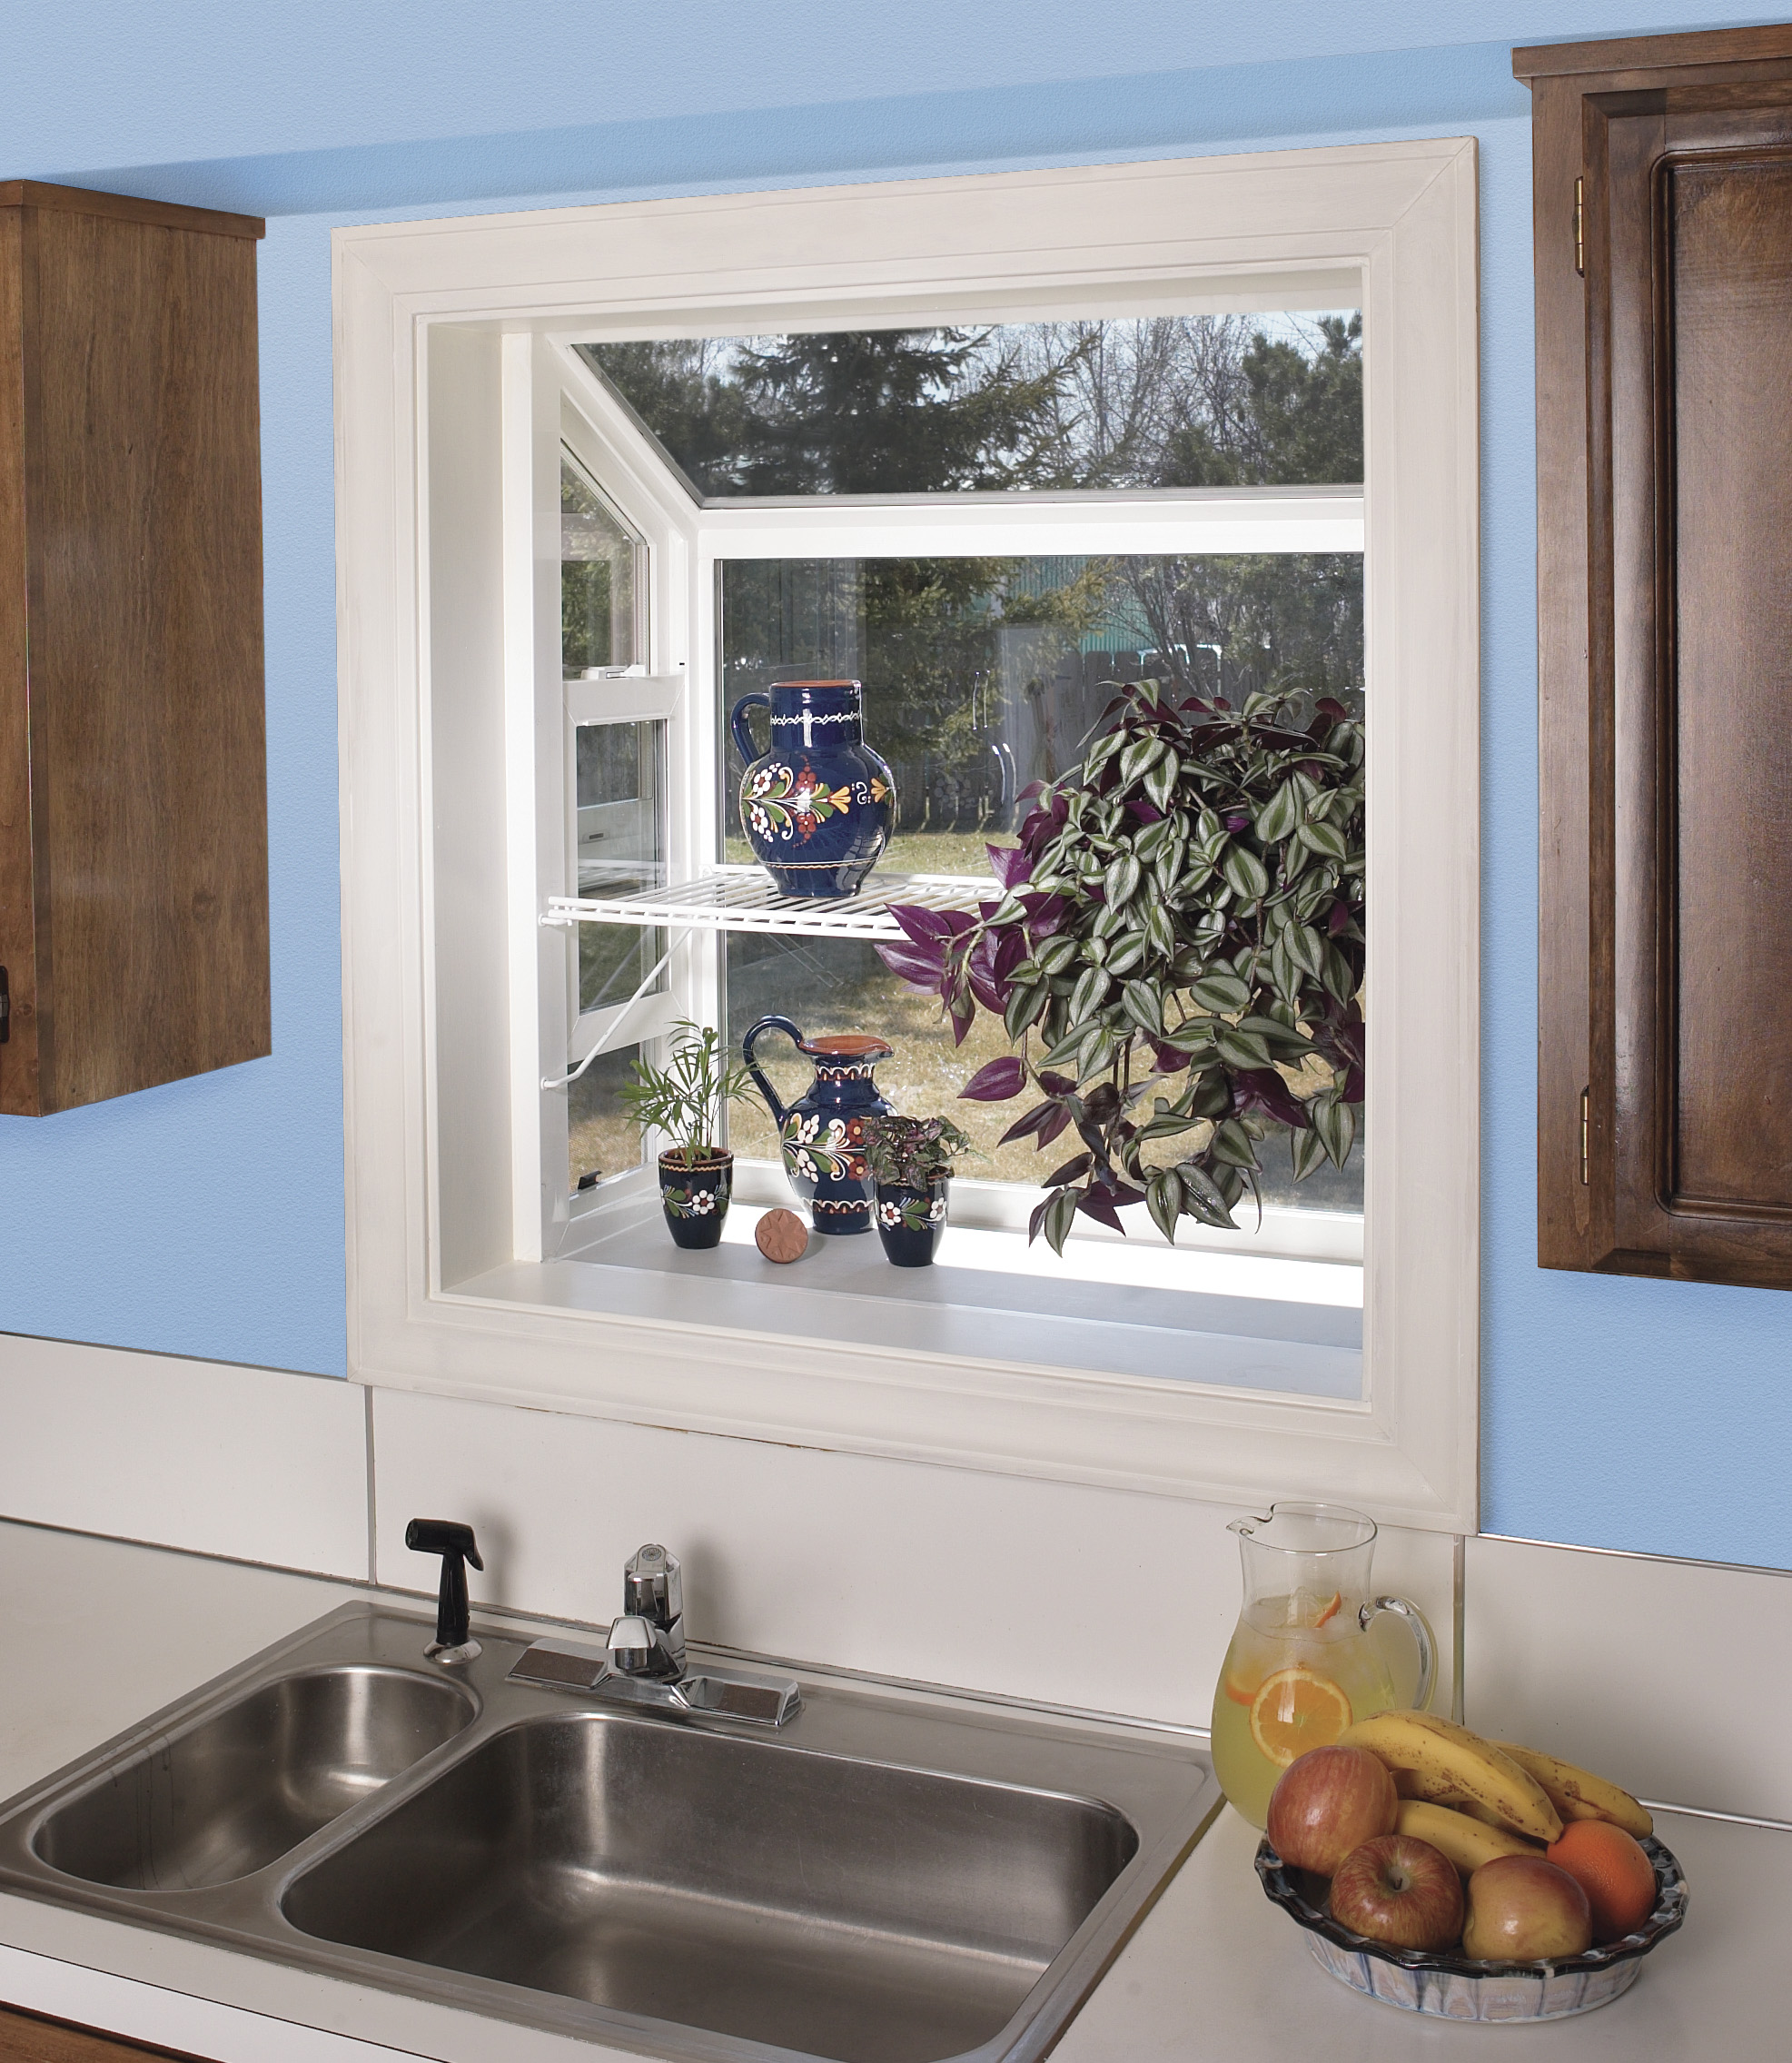 How To Decorate Garden Windows For Kitchens So That The